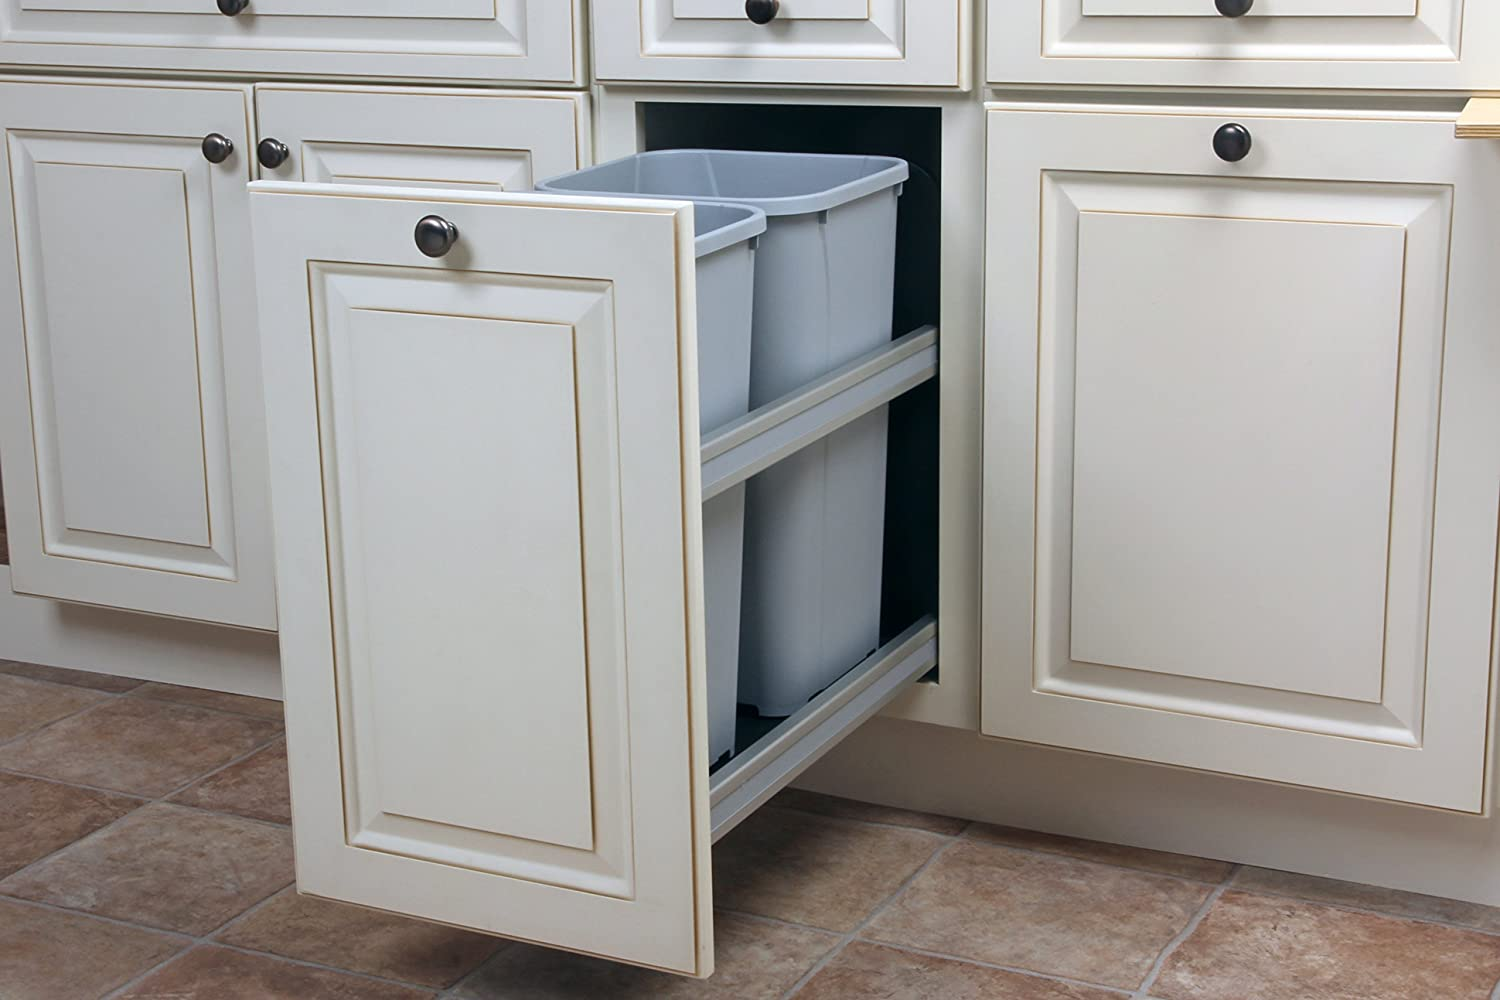 Trash can pull-out cabinet. White cabinets.